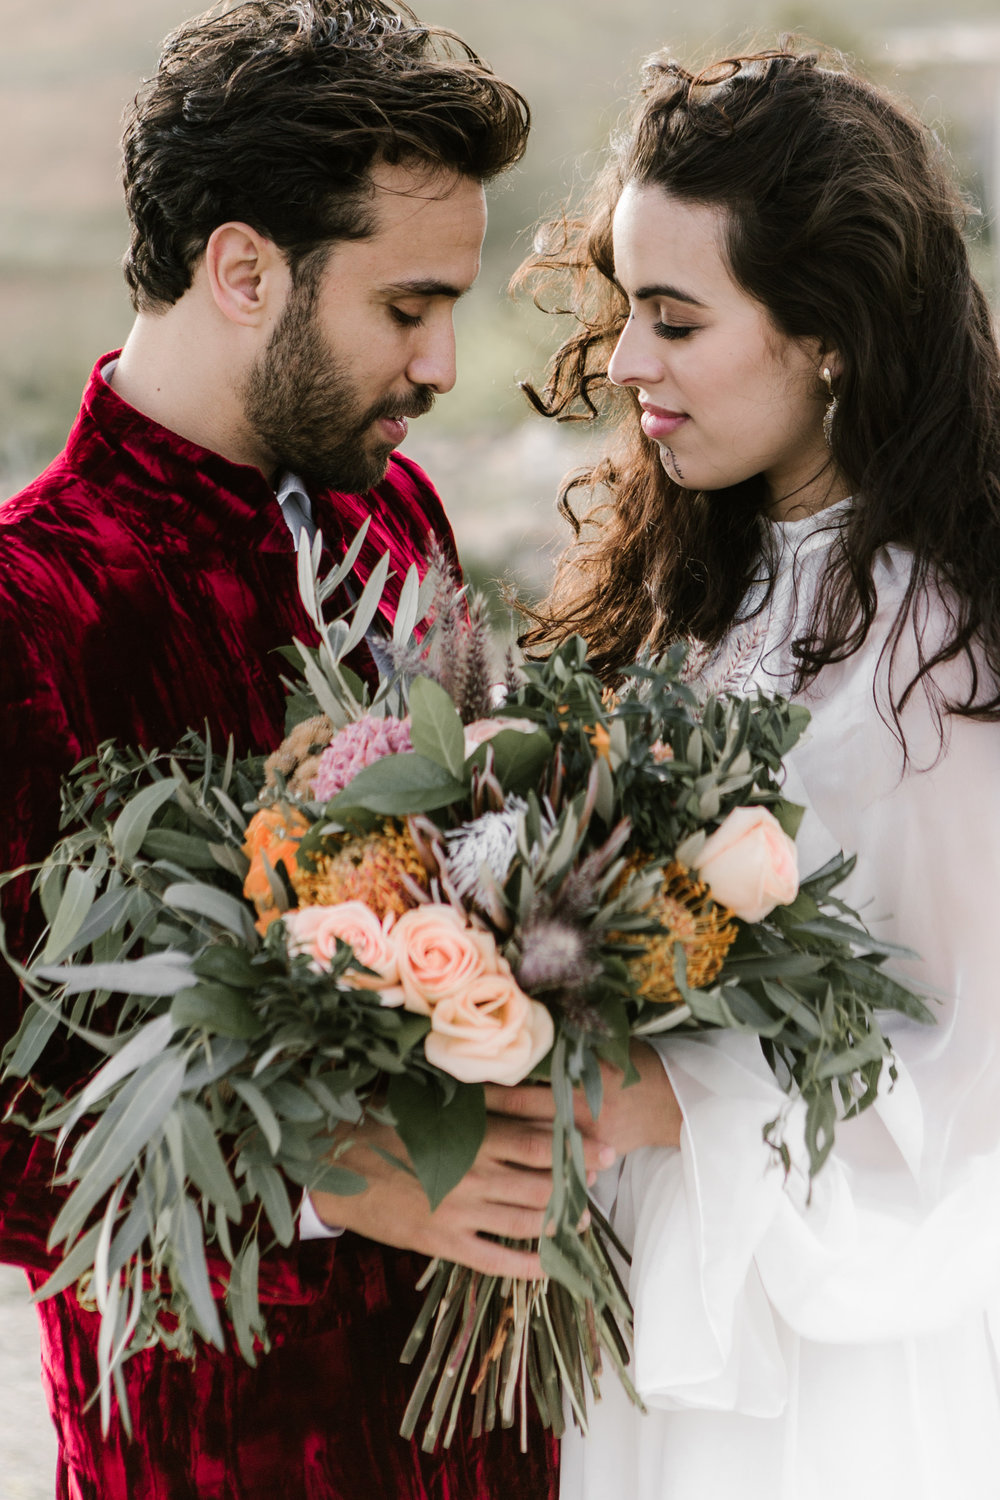 MINI ELOPEMENT PACKAGE - elopement with only celebrant without guests1500 euro- up to 3h photo cover + couple mini-shoot- 200 fully edited photos- special box with USB and 30 prints